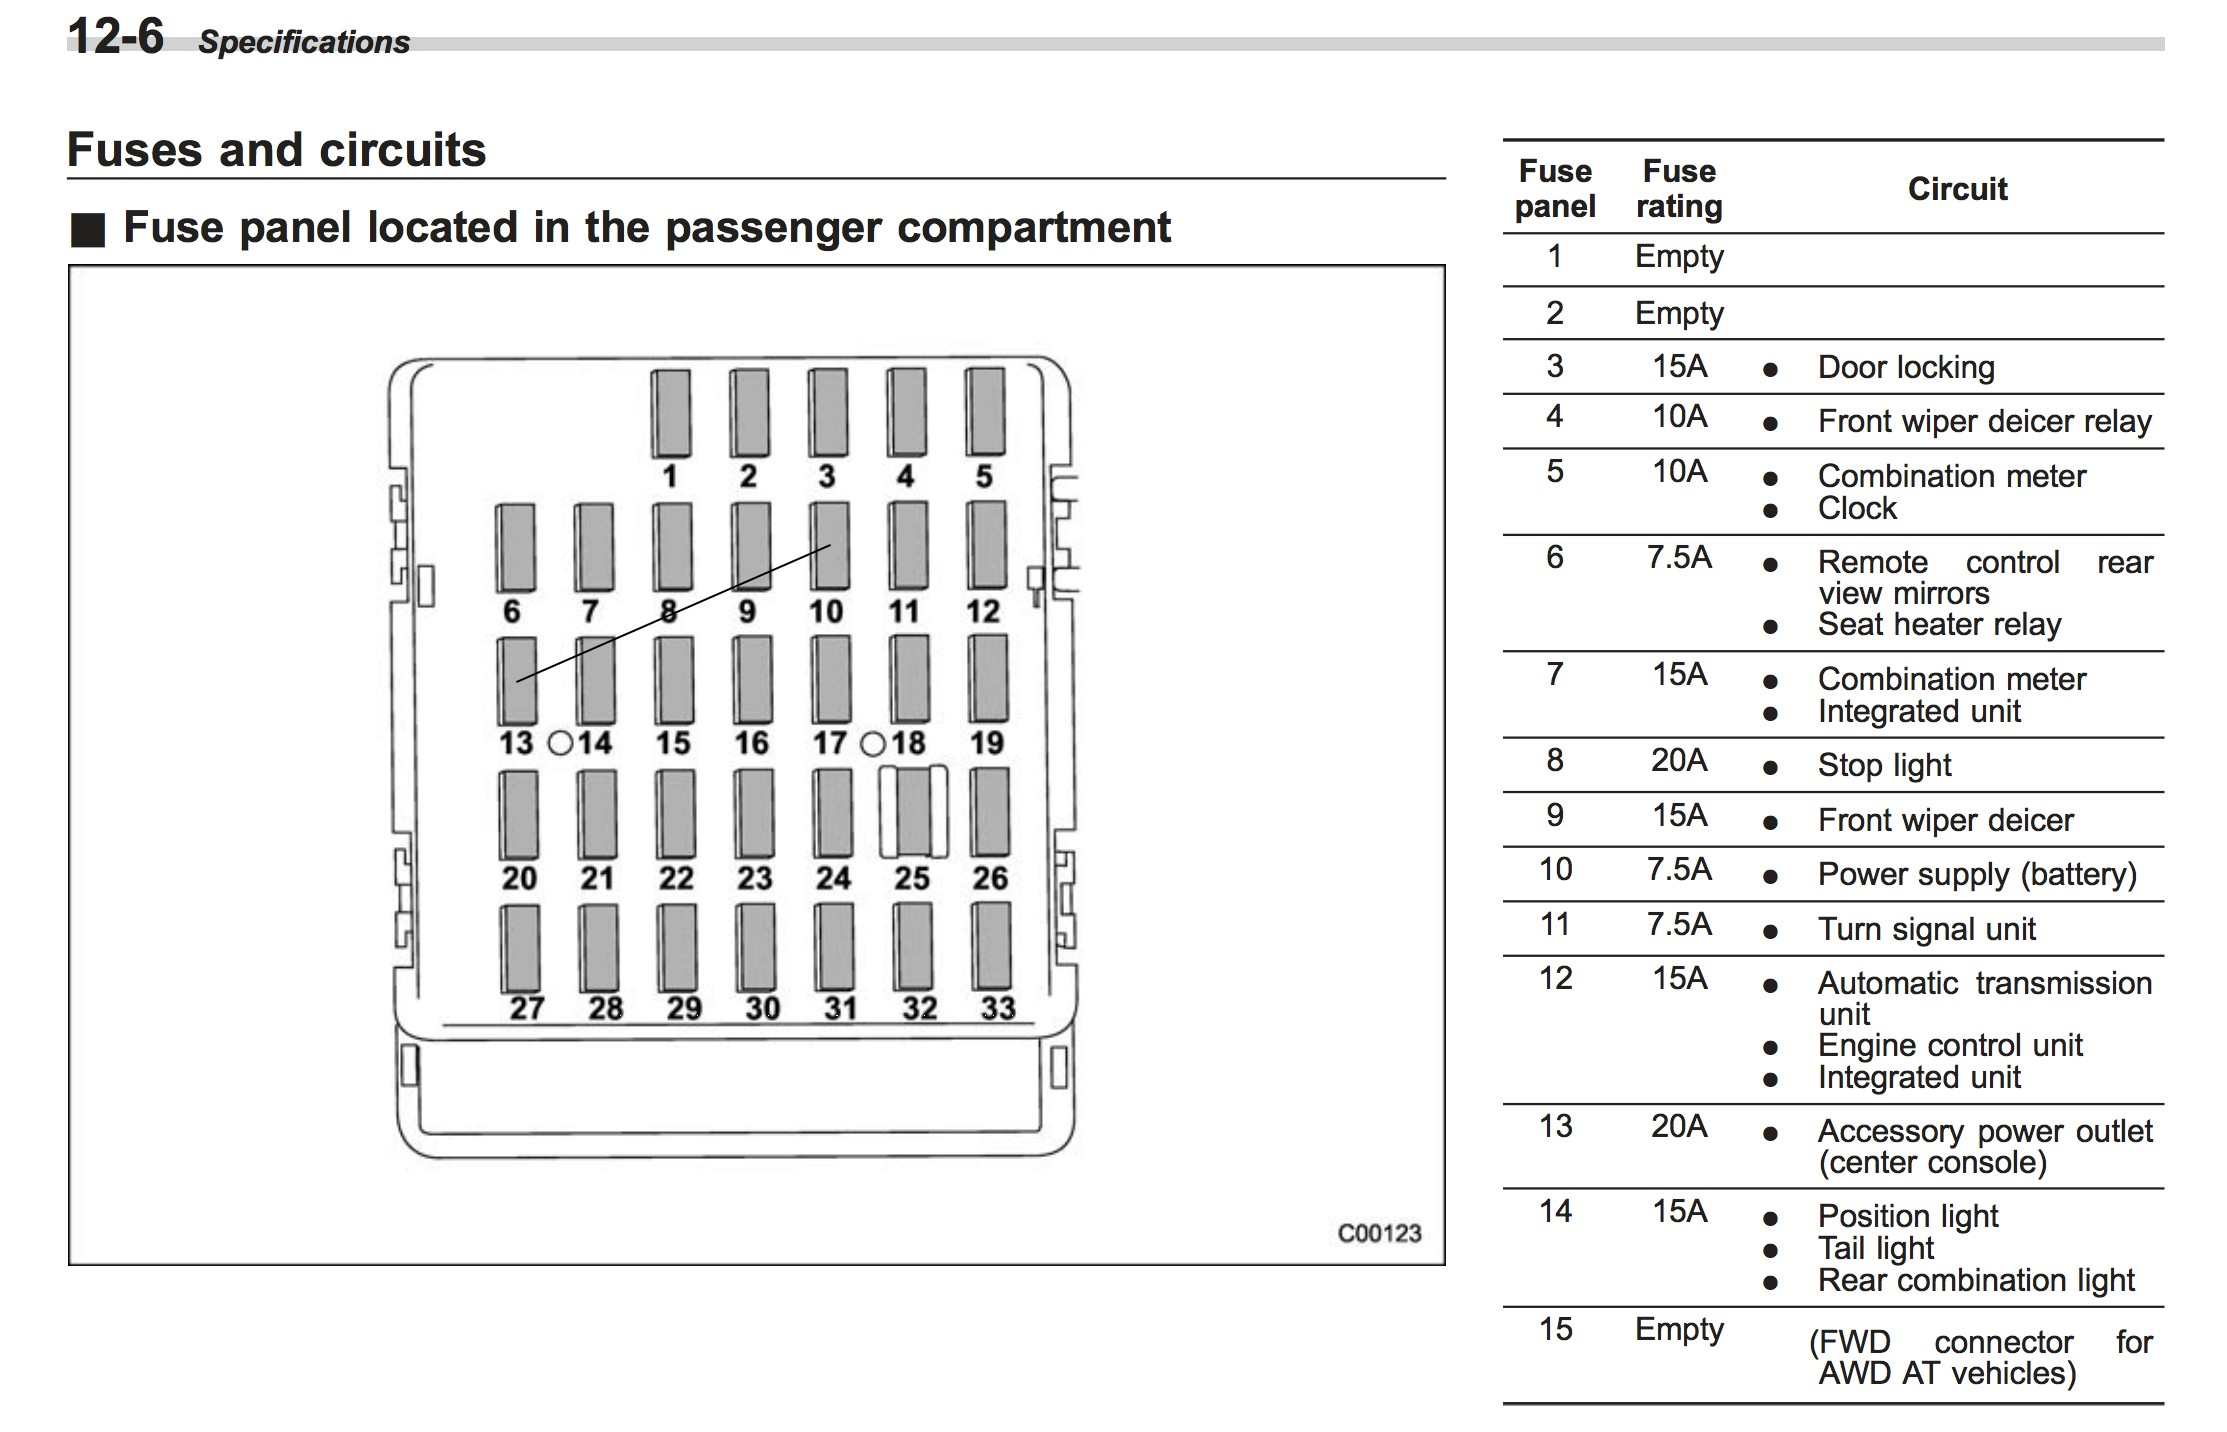 2015 Wrx Engine Diagram 2011 Subaru forester Fuse Box Another Blog About Wiring Diagram • Of 2015 Wrx Engine Diagram